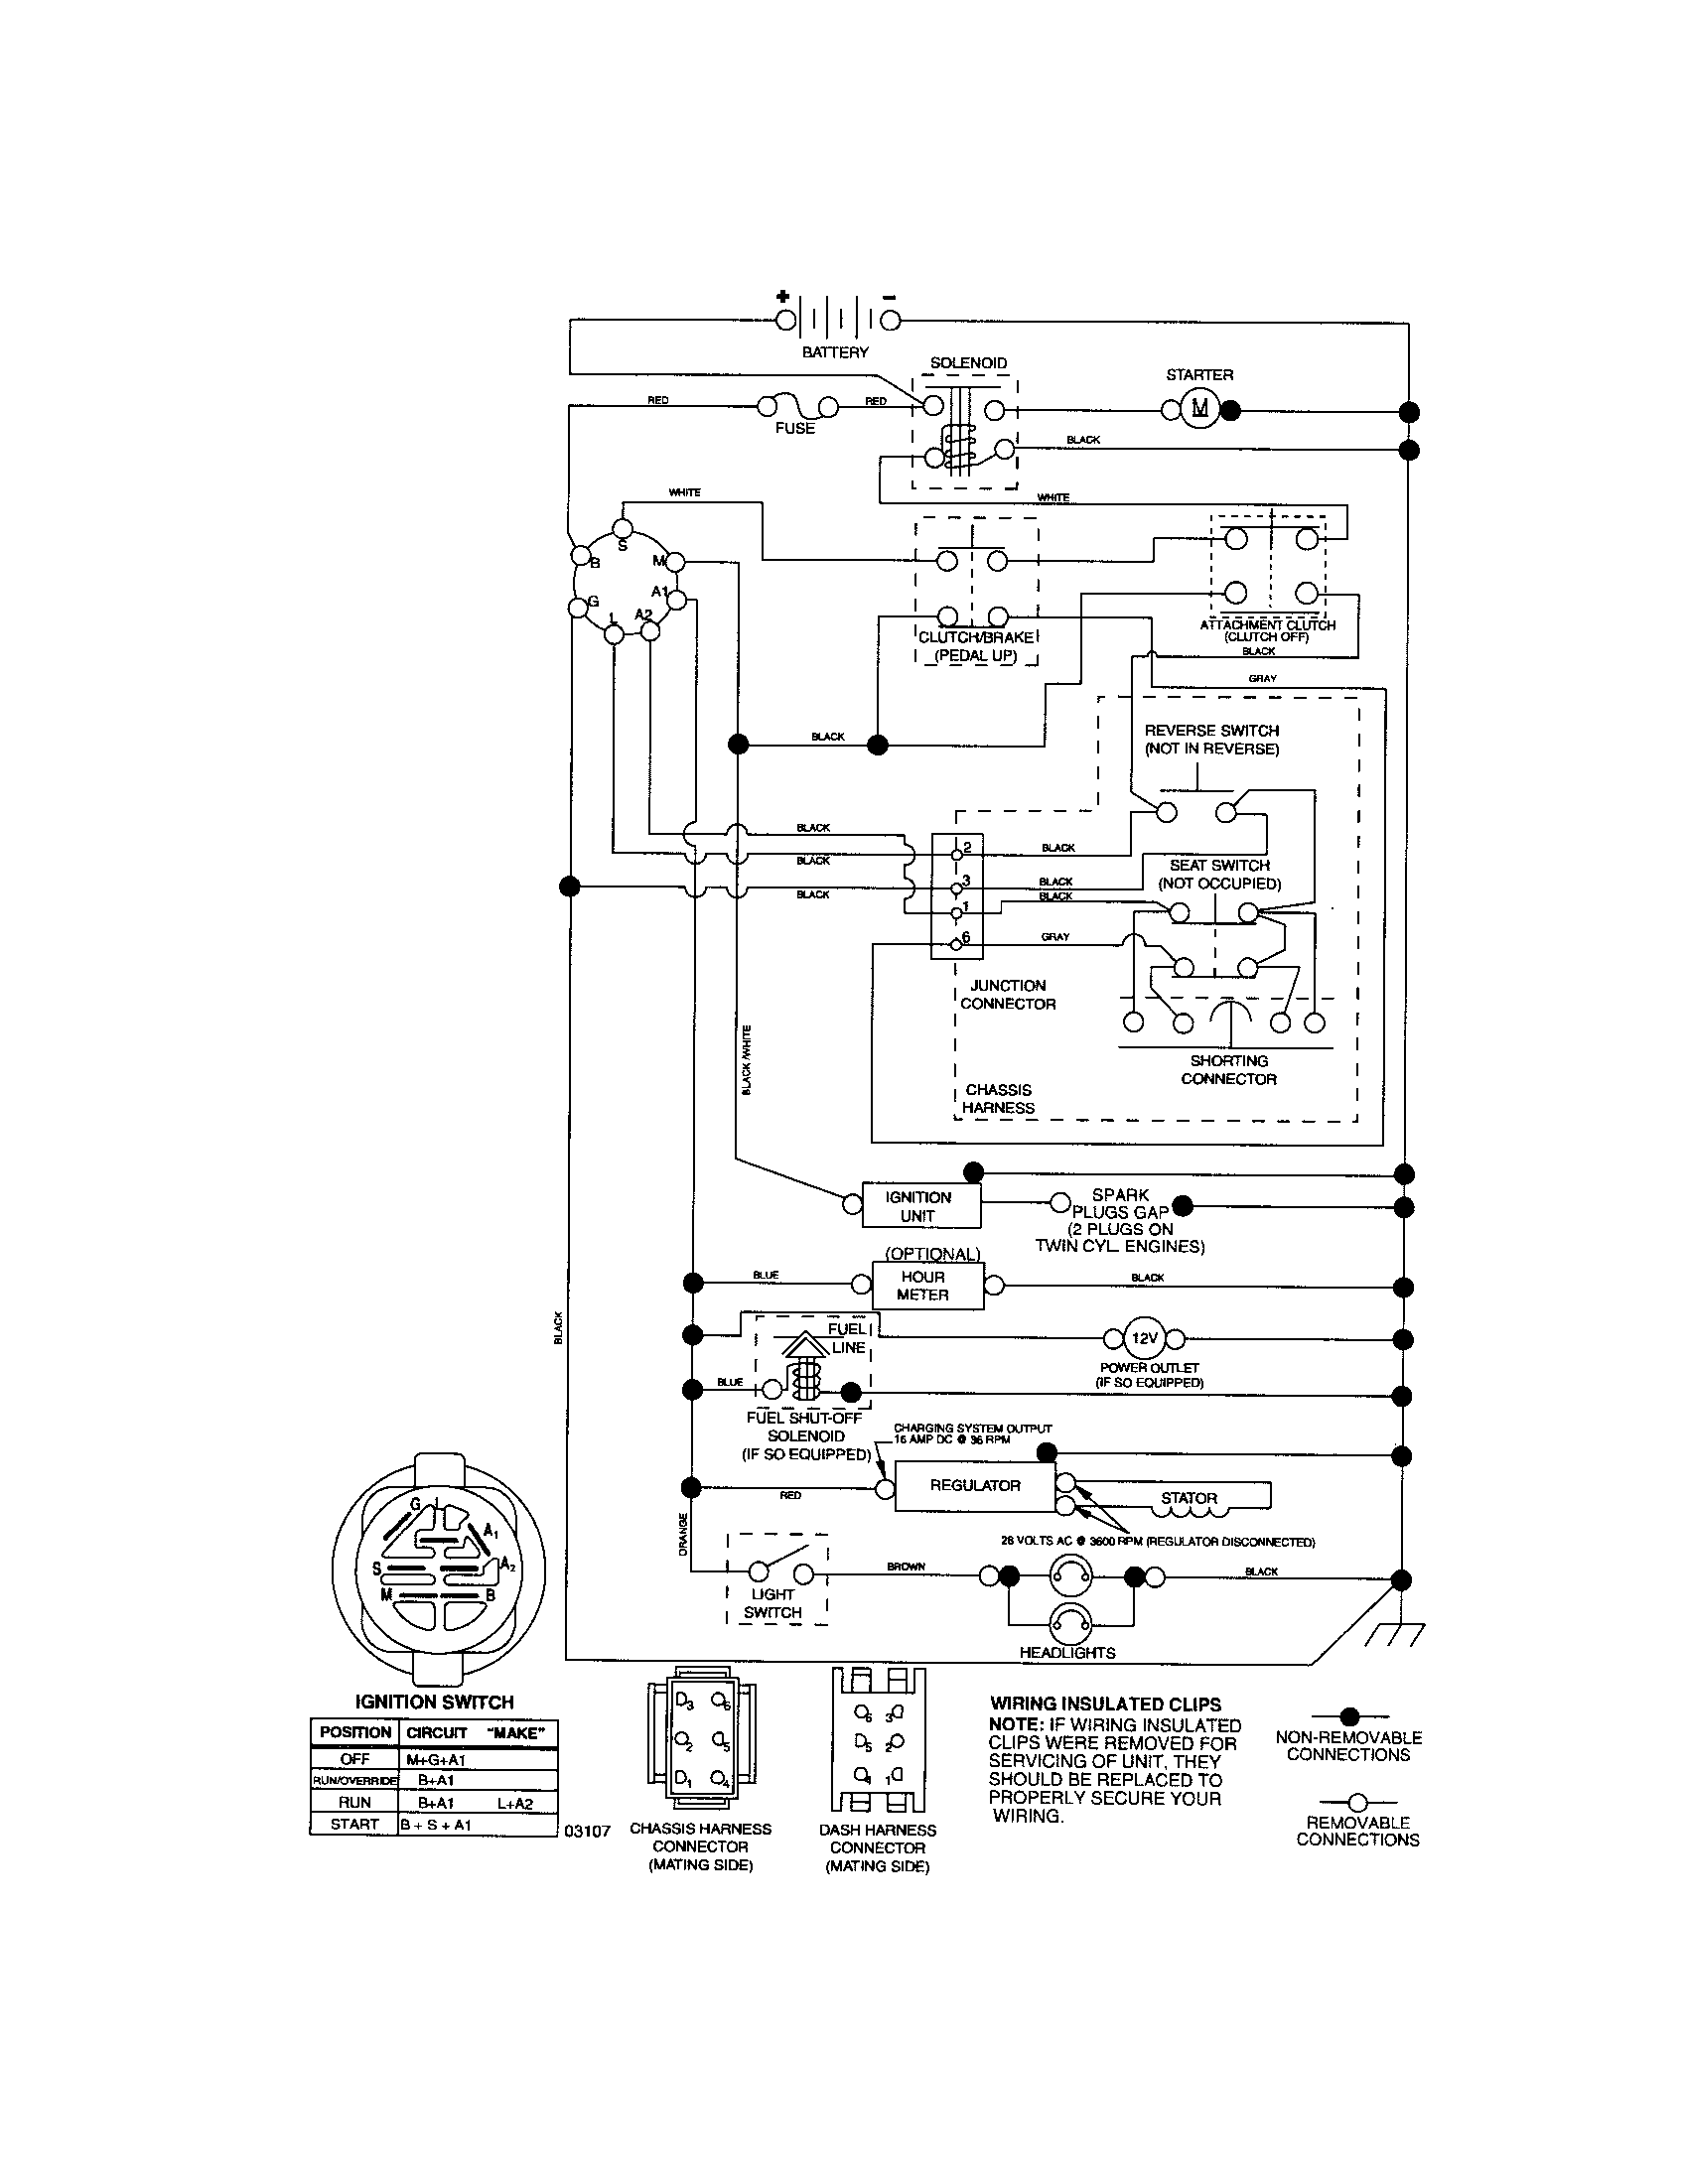 6af5f1447fd13c8443376822ddc1e105 craftsman riding mower electrical diagram wiring diagram craftsman model 917 wiring diagram at crackthecode.co